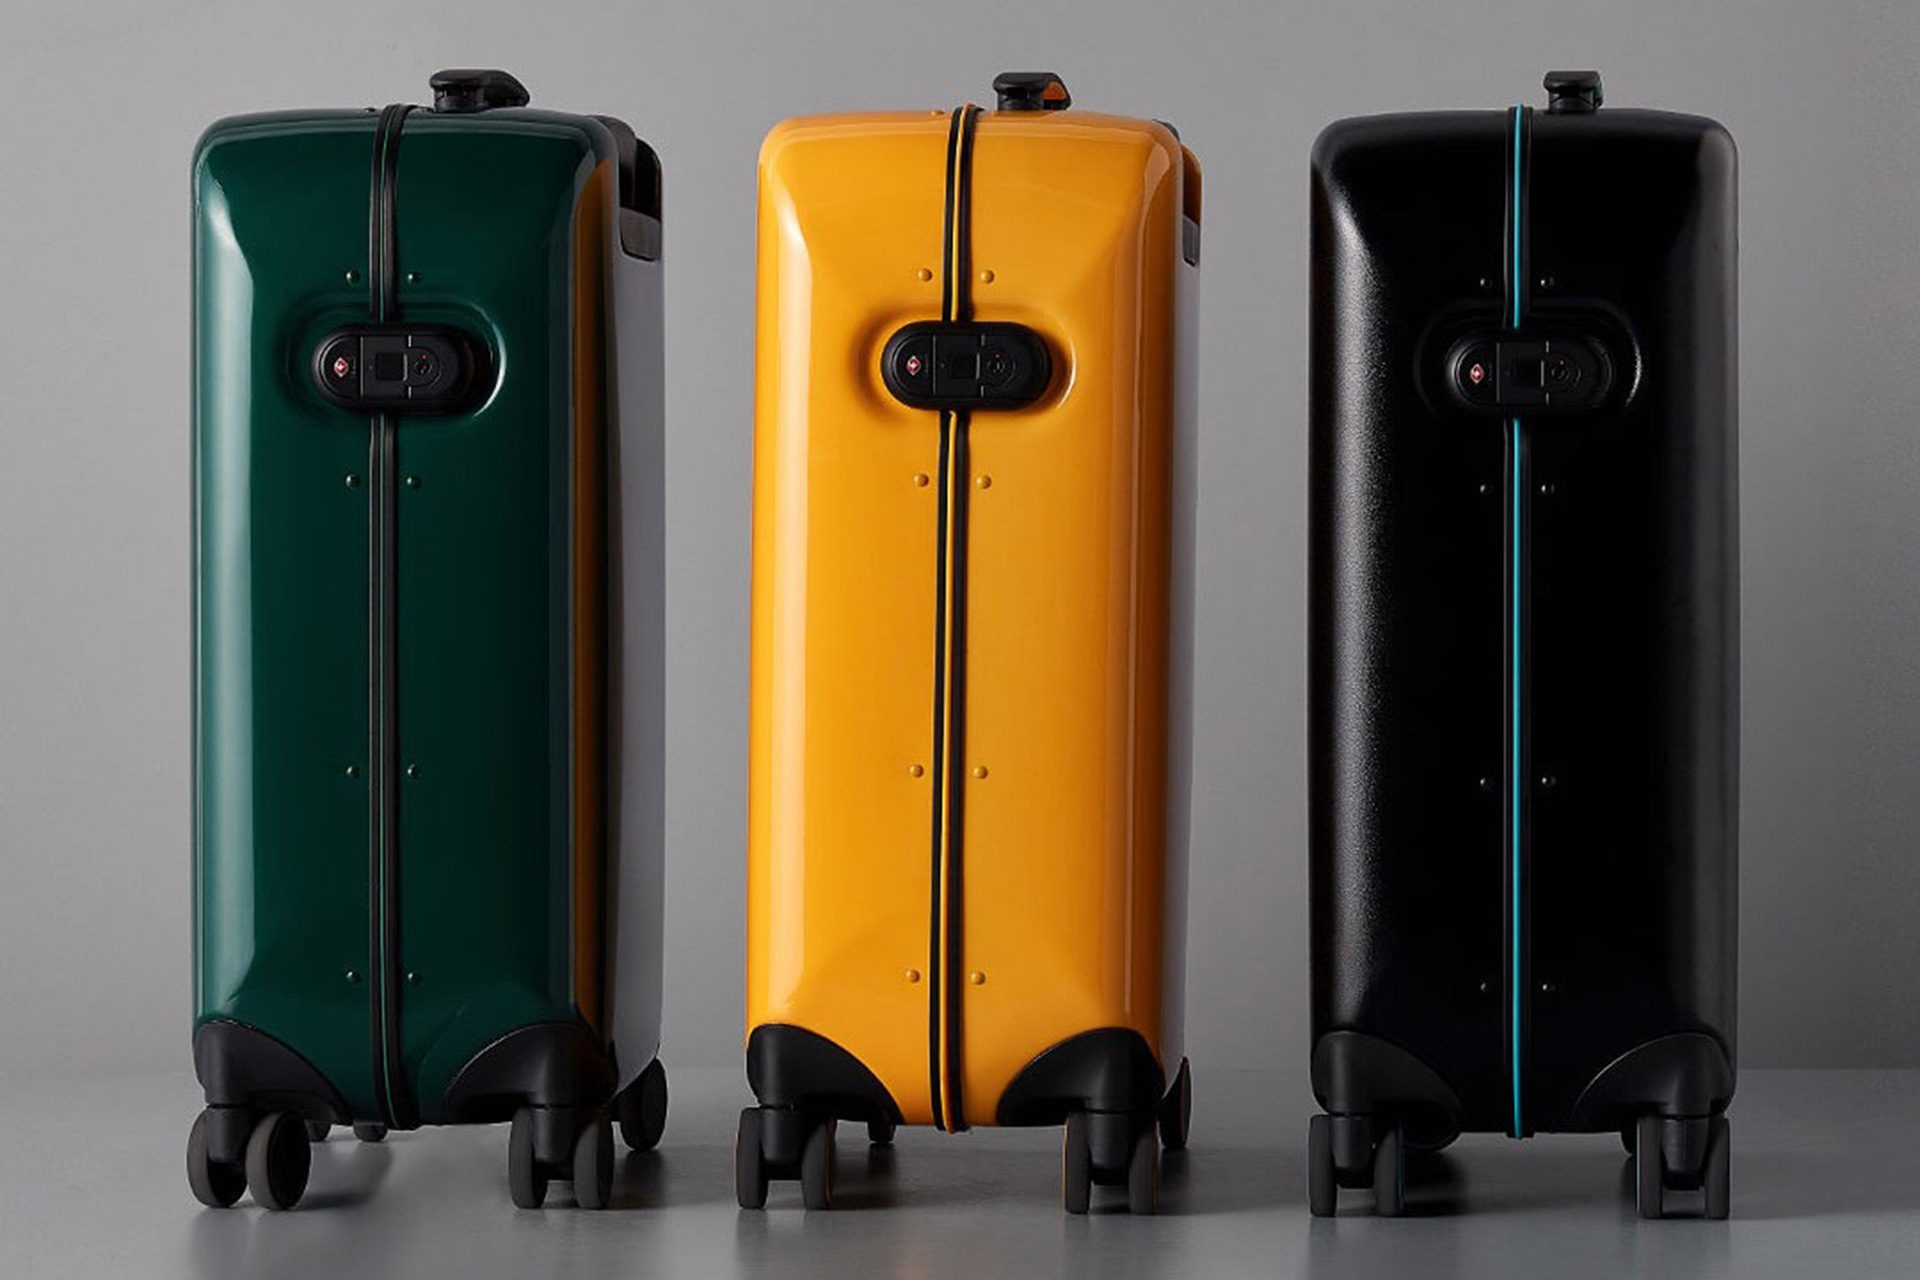 runmi-smart-luggage